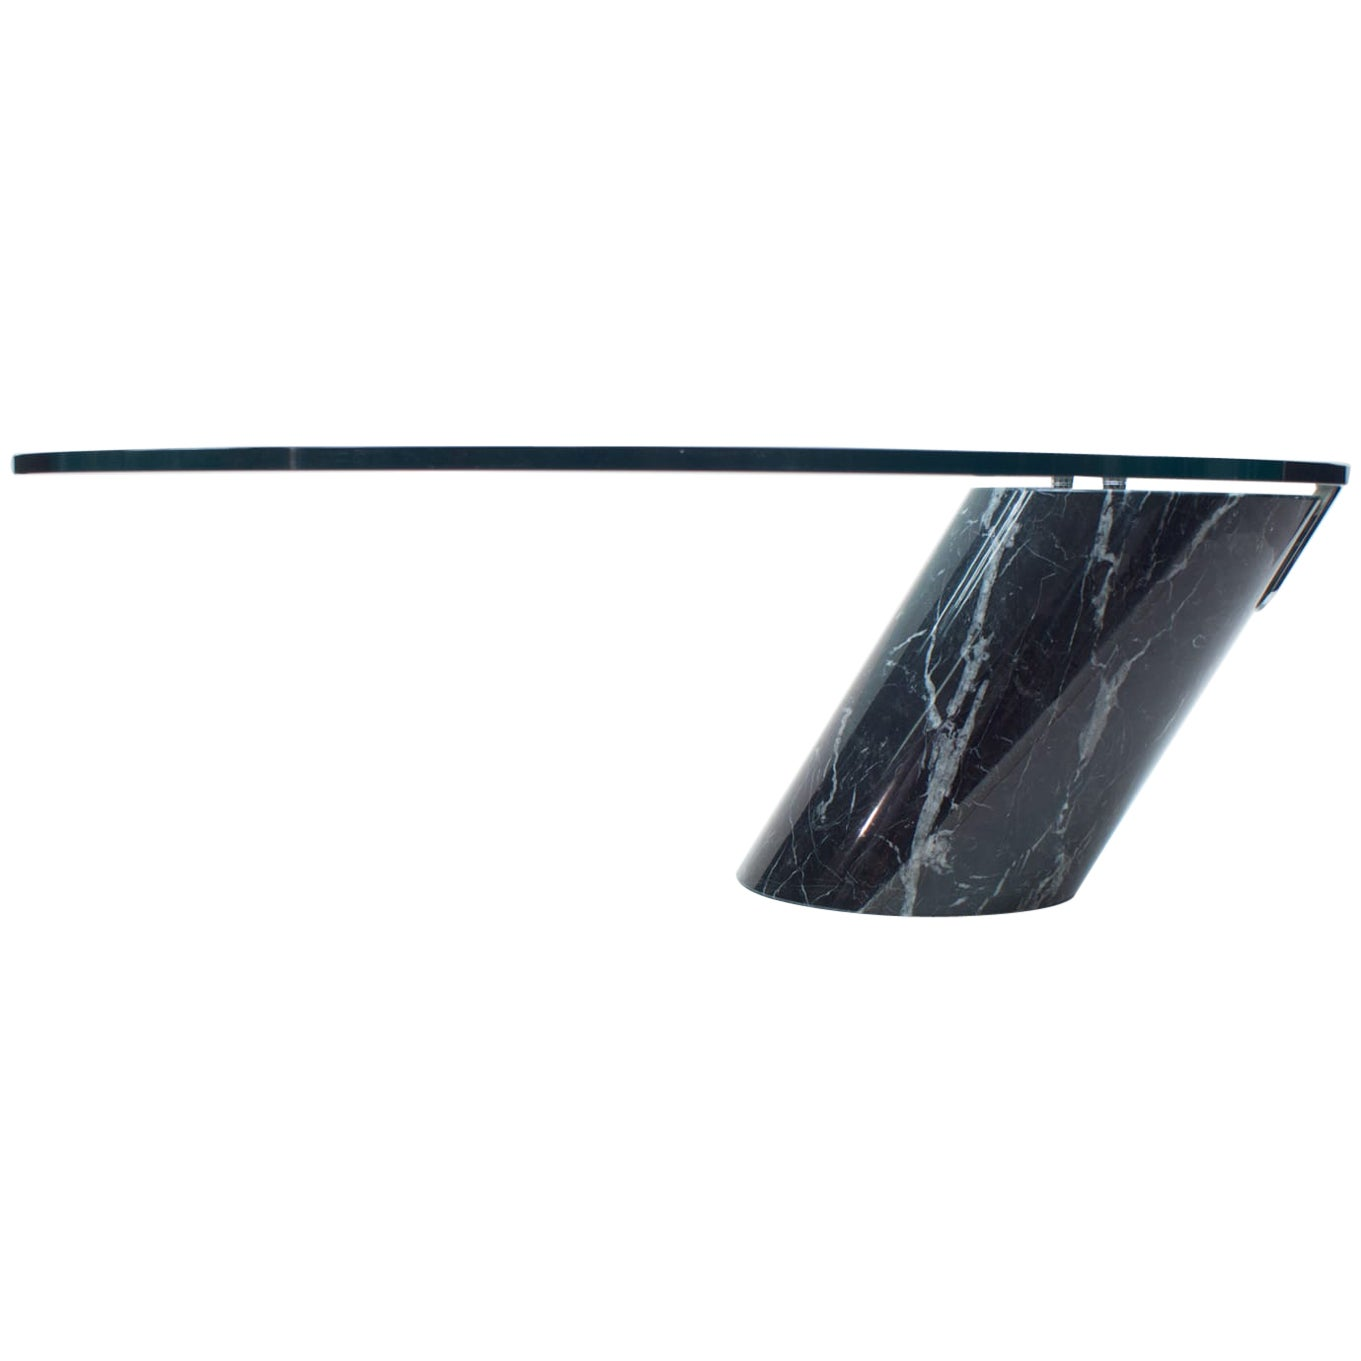 Black Marble and Glass Coffee Table Model K1000 by Team Form for Ronald Schmitt